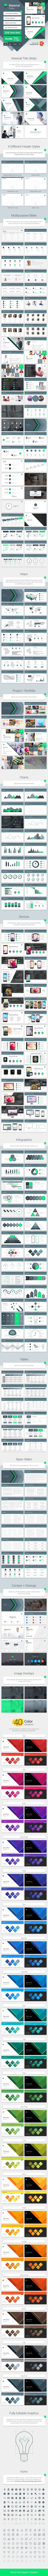 Material Presentation TemplatesWelcome to Material Design Powerpoint Presentation Template. We offer over 210 unique presentation slides, with great professional material design, material colors and creative ideas. Business presentation templates need a…